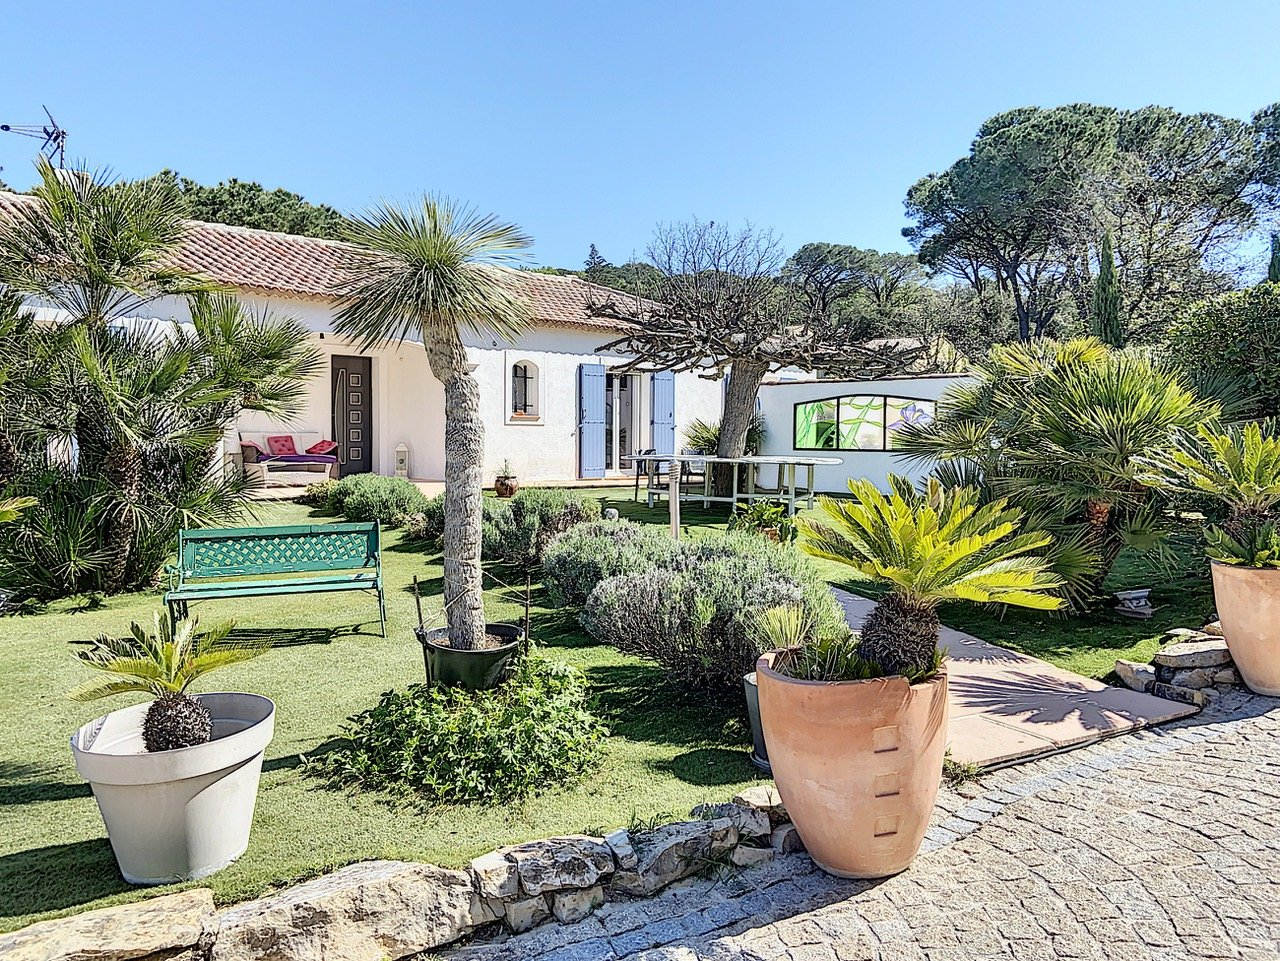 Beautiful villa in a mint condition with pool